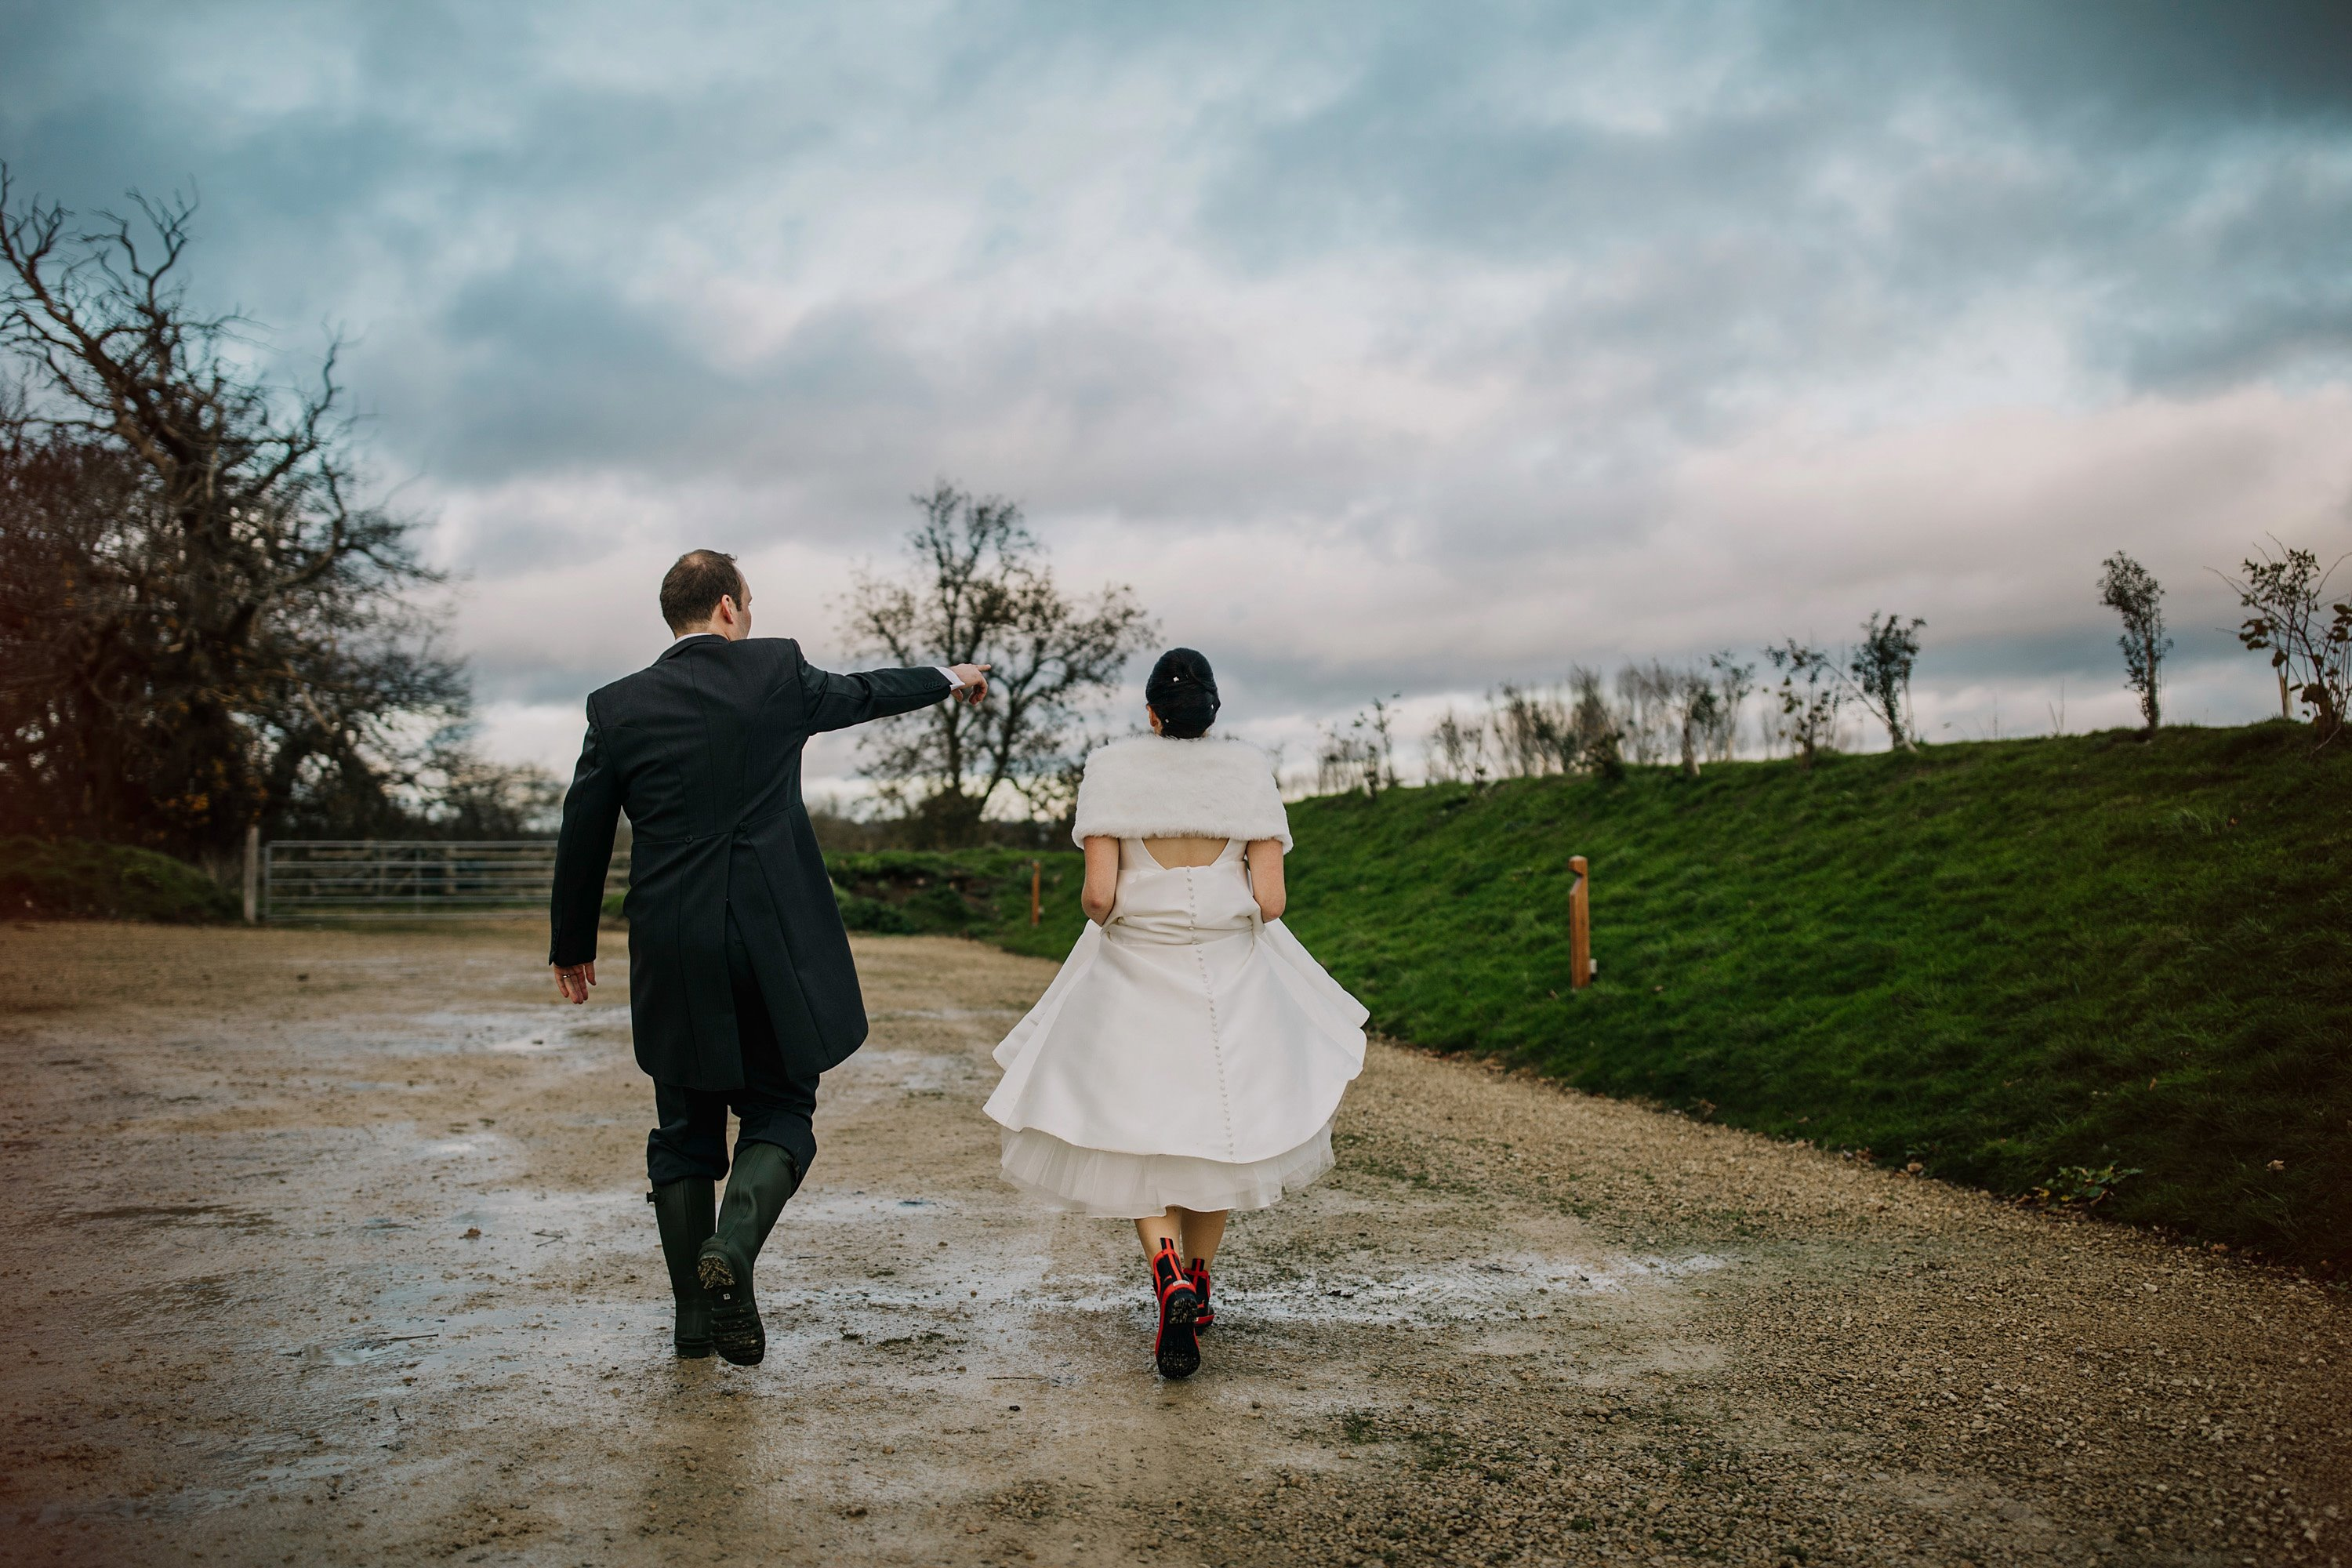 Bride wearing wellies and shawl on a rainy day